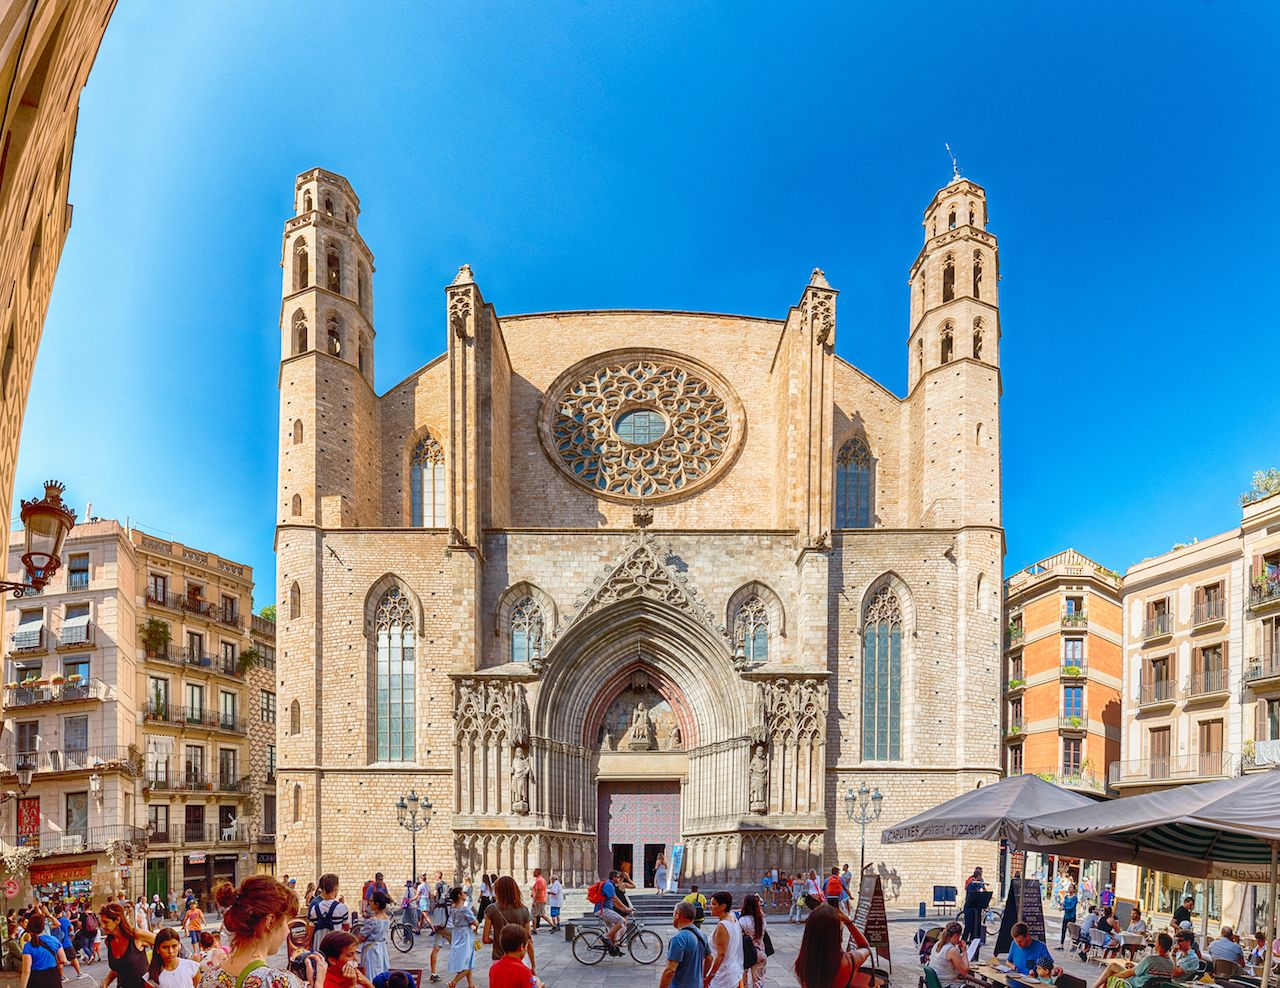 Scenic facade of the Gothic church of Santa Maria del Mar in the Ribera district of Barcelona